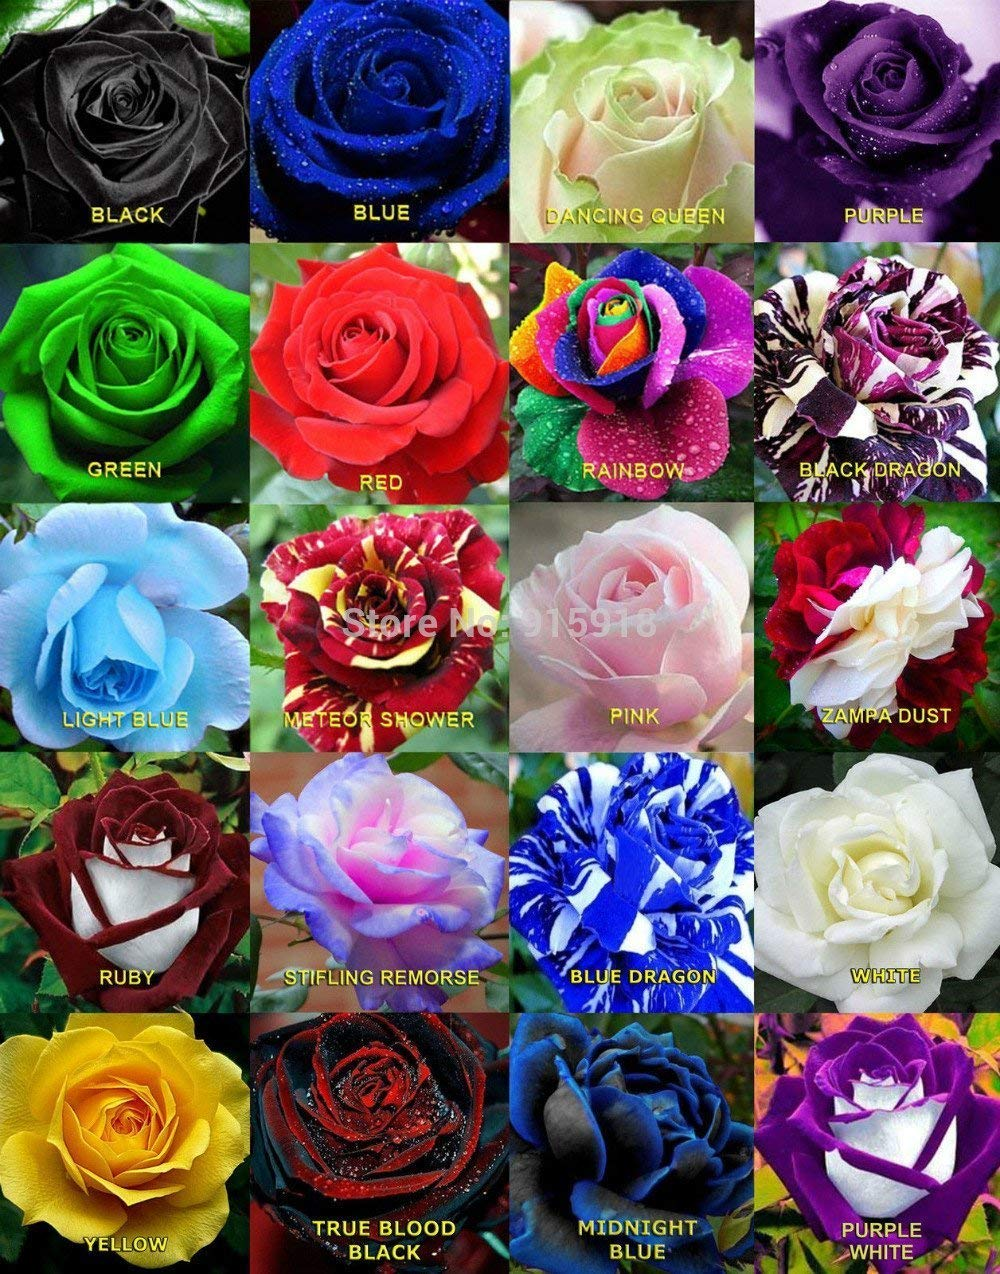 All color rose flower images